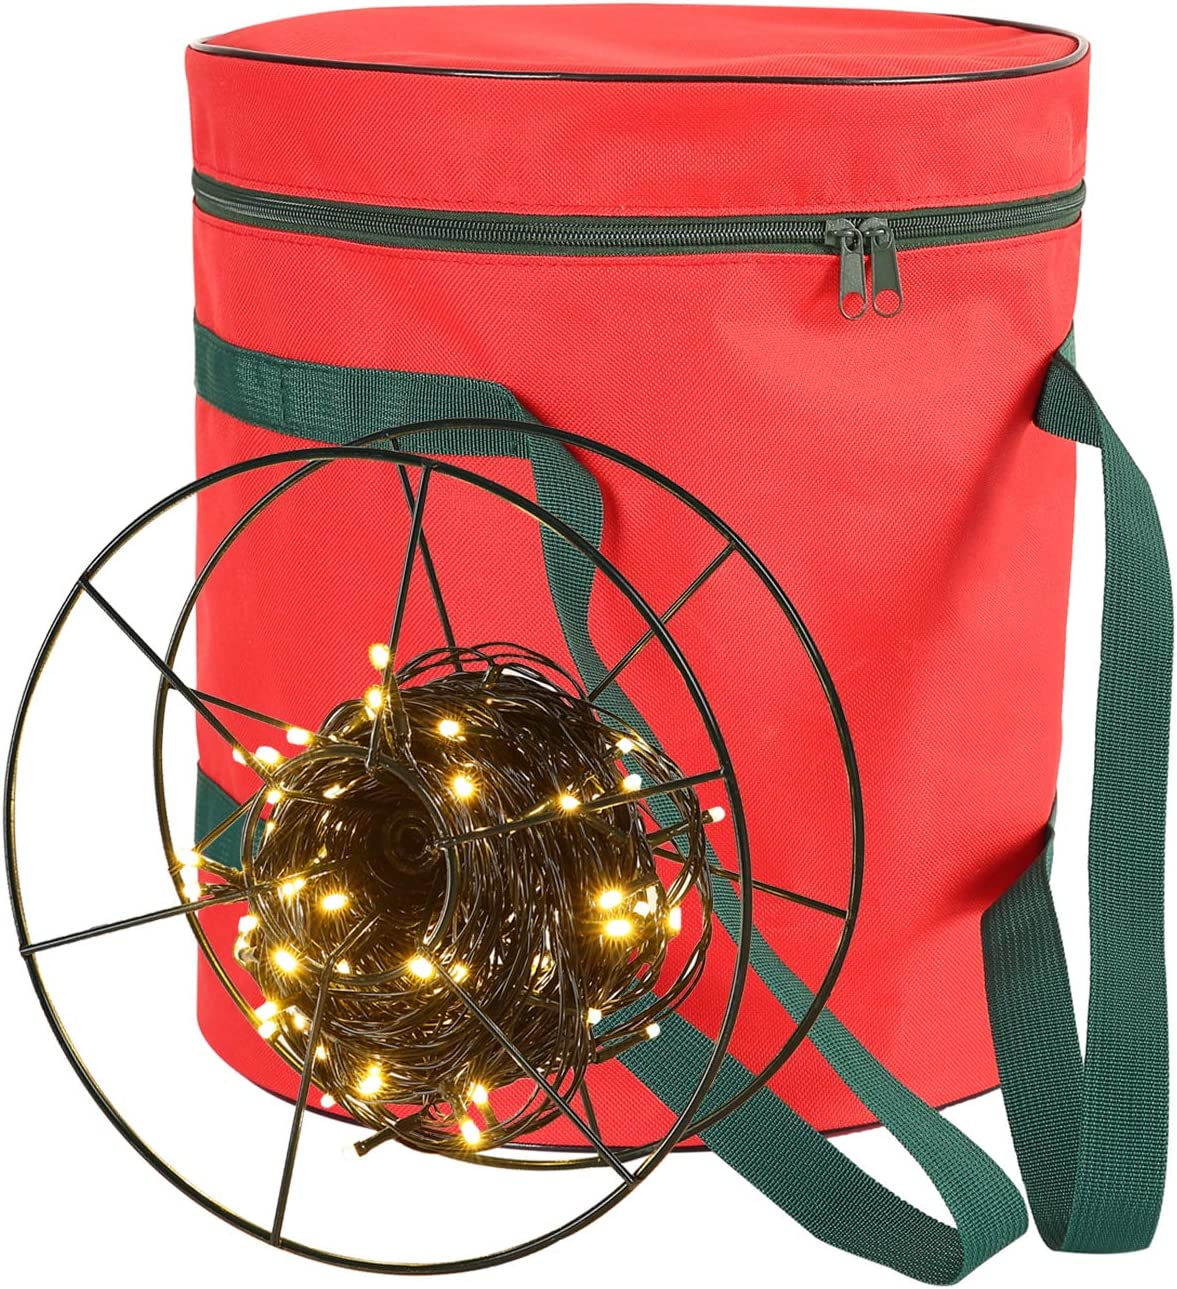 Sattiyrch Clearance SALE! Limited time! Christmas Light Storage Bag - to with Topics on TV Reels 3 Metal St